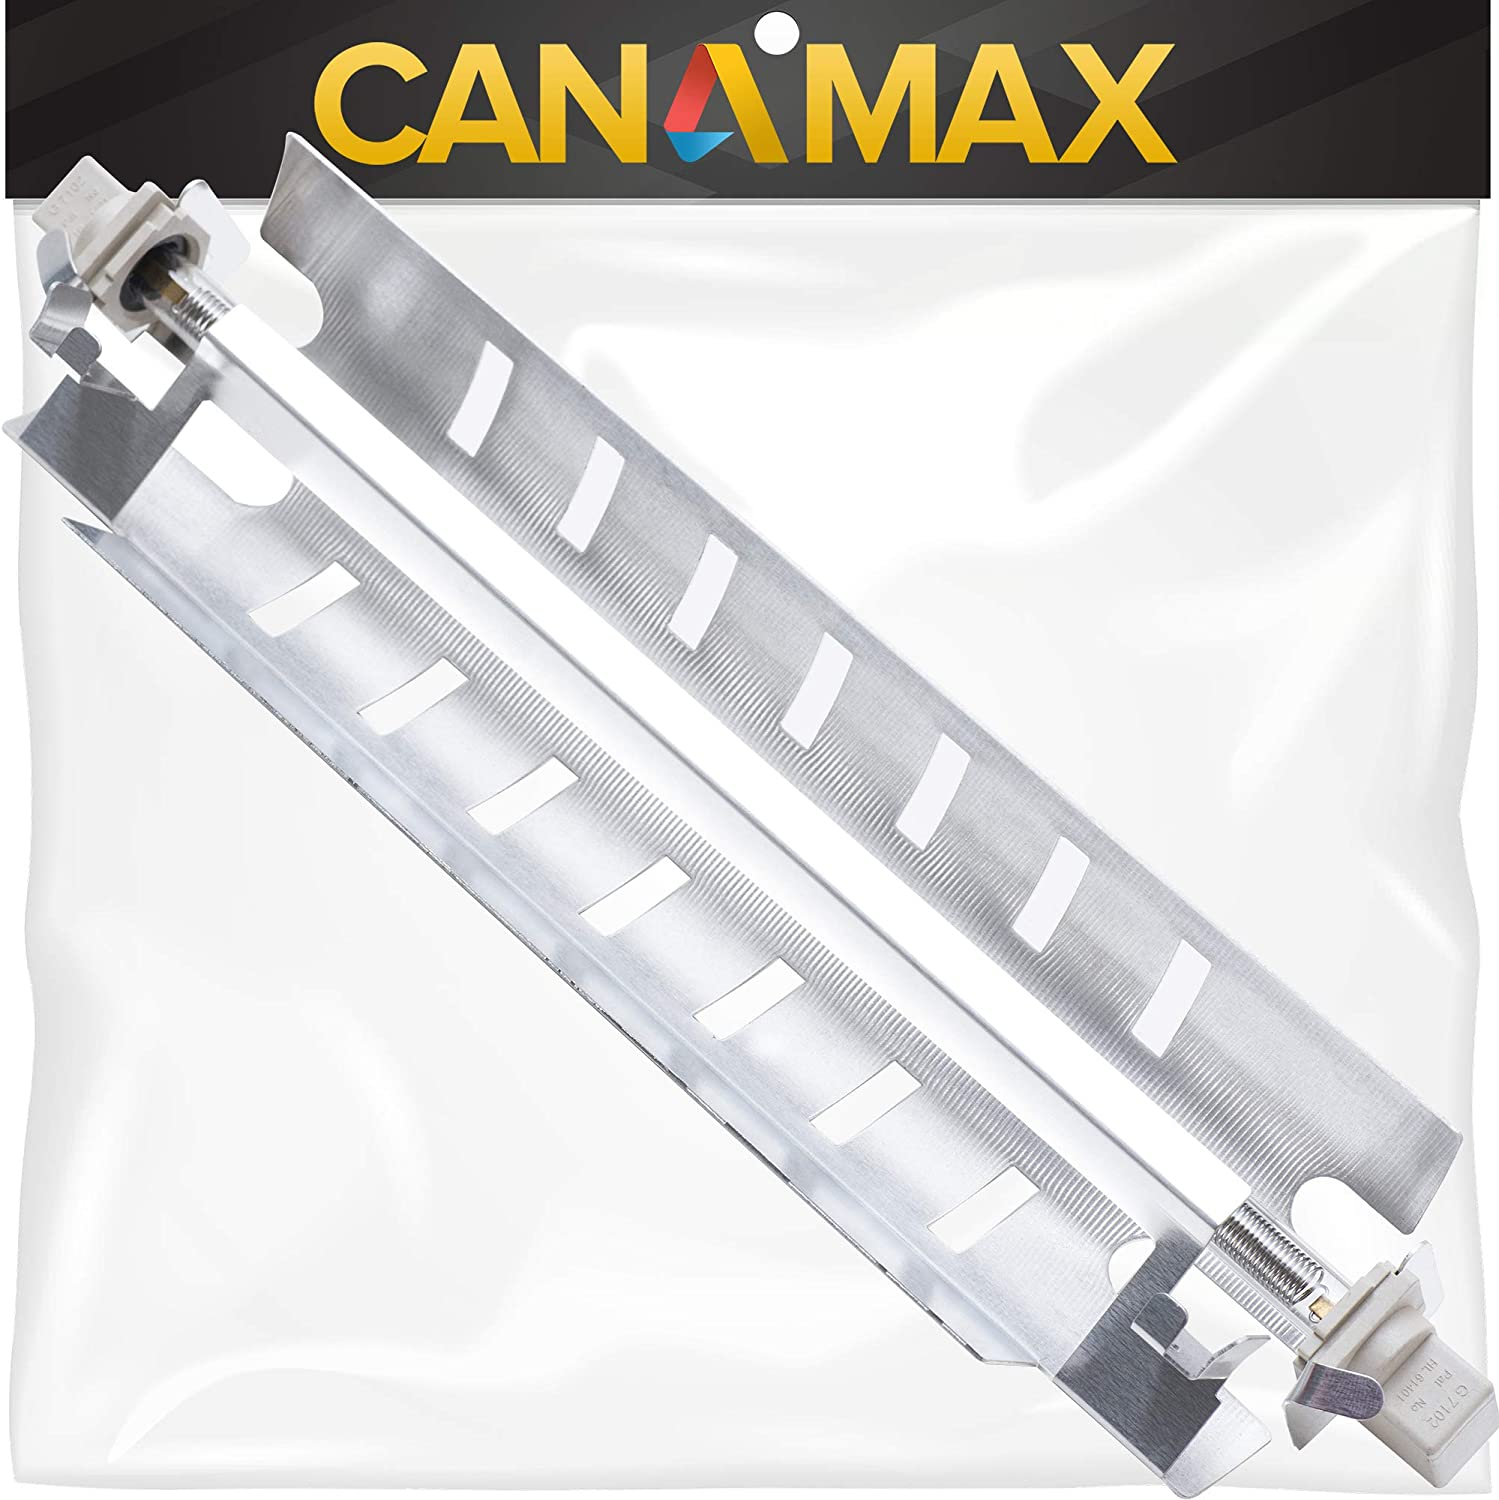 WR51X10055 Defrost Heater Heating Element Assembly Premium Replacement Part by Canamax - Compatible with GE Hotpoint Refrigerators - Replaces 914088 AP3183311 WR51X10030